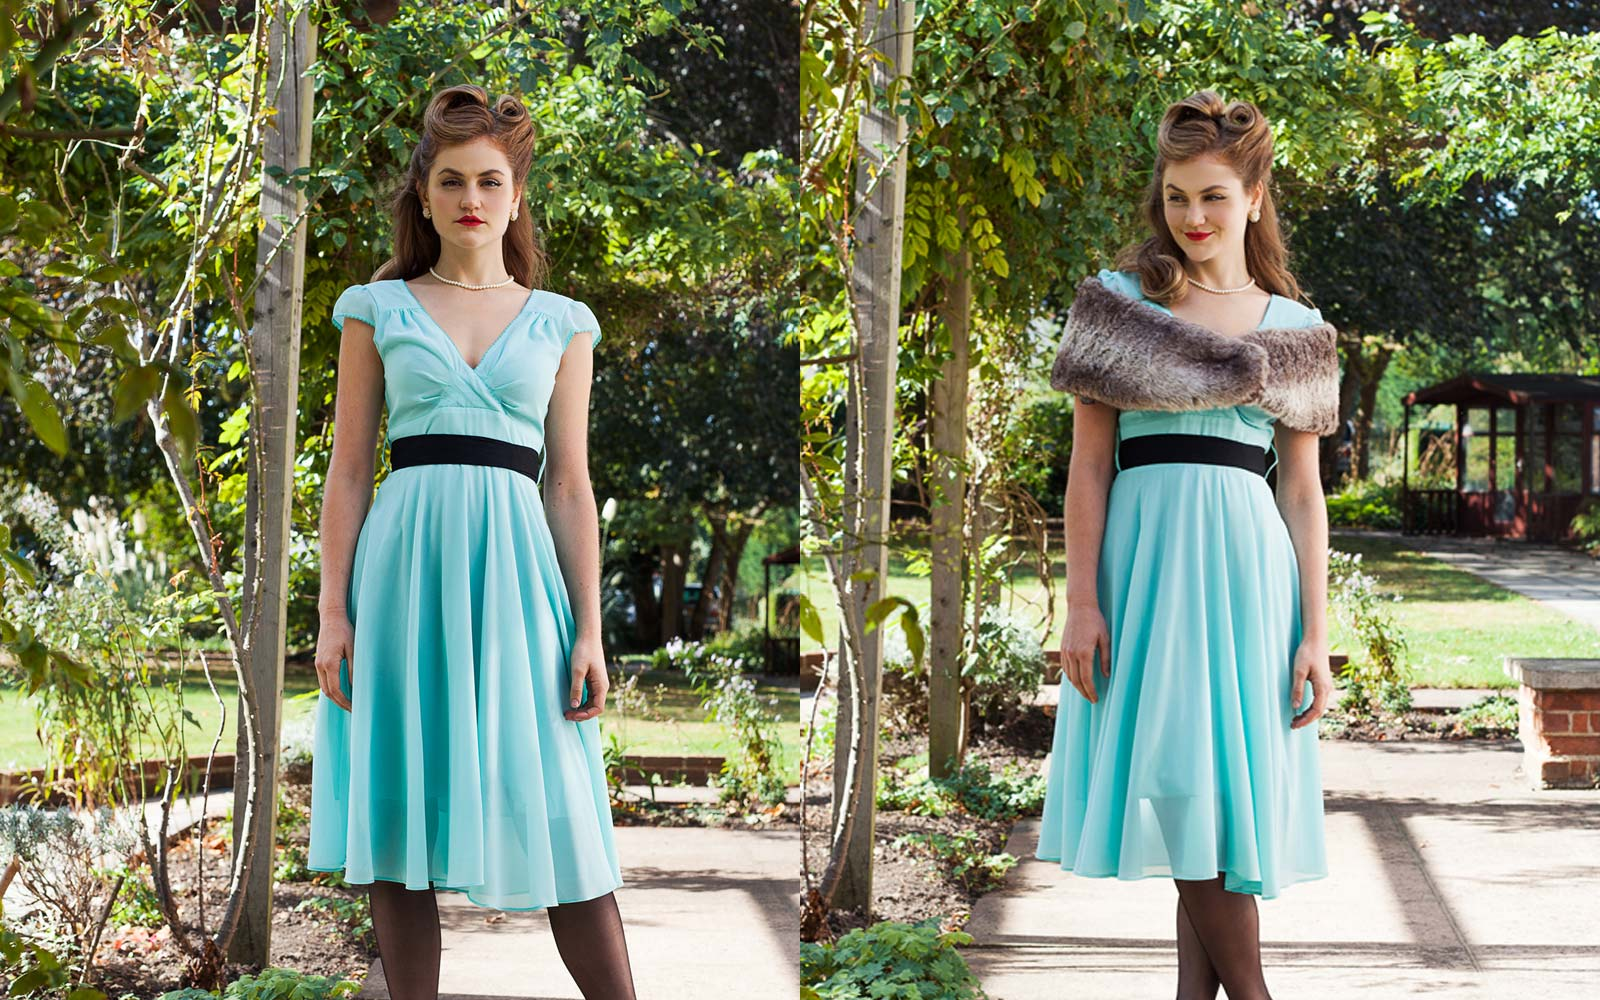 Vintage 1940s & 50s Inspired Clothing For Women